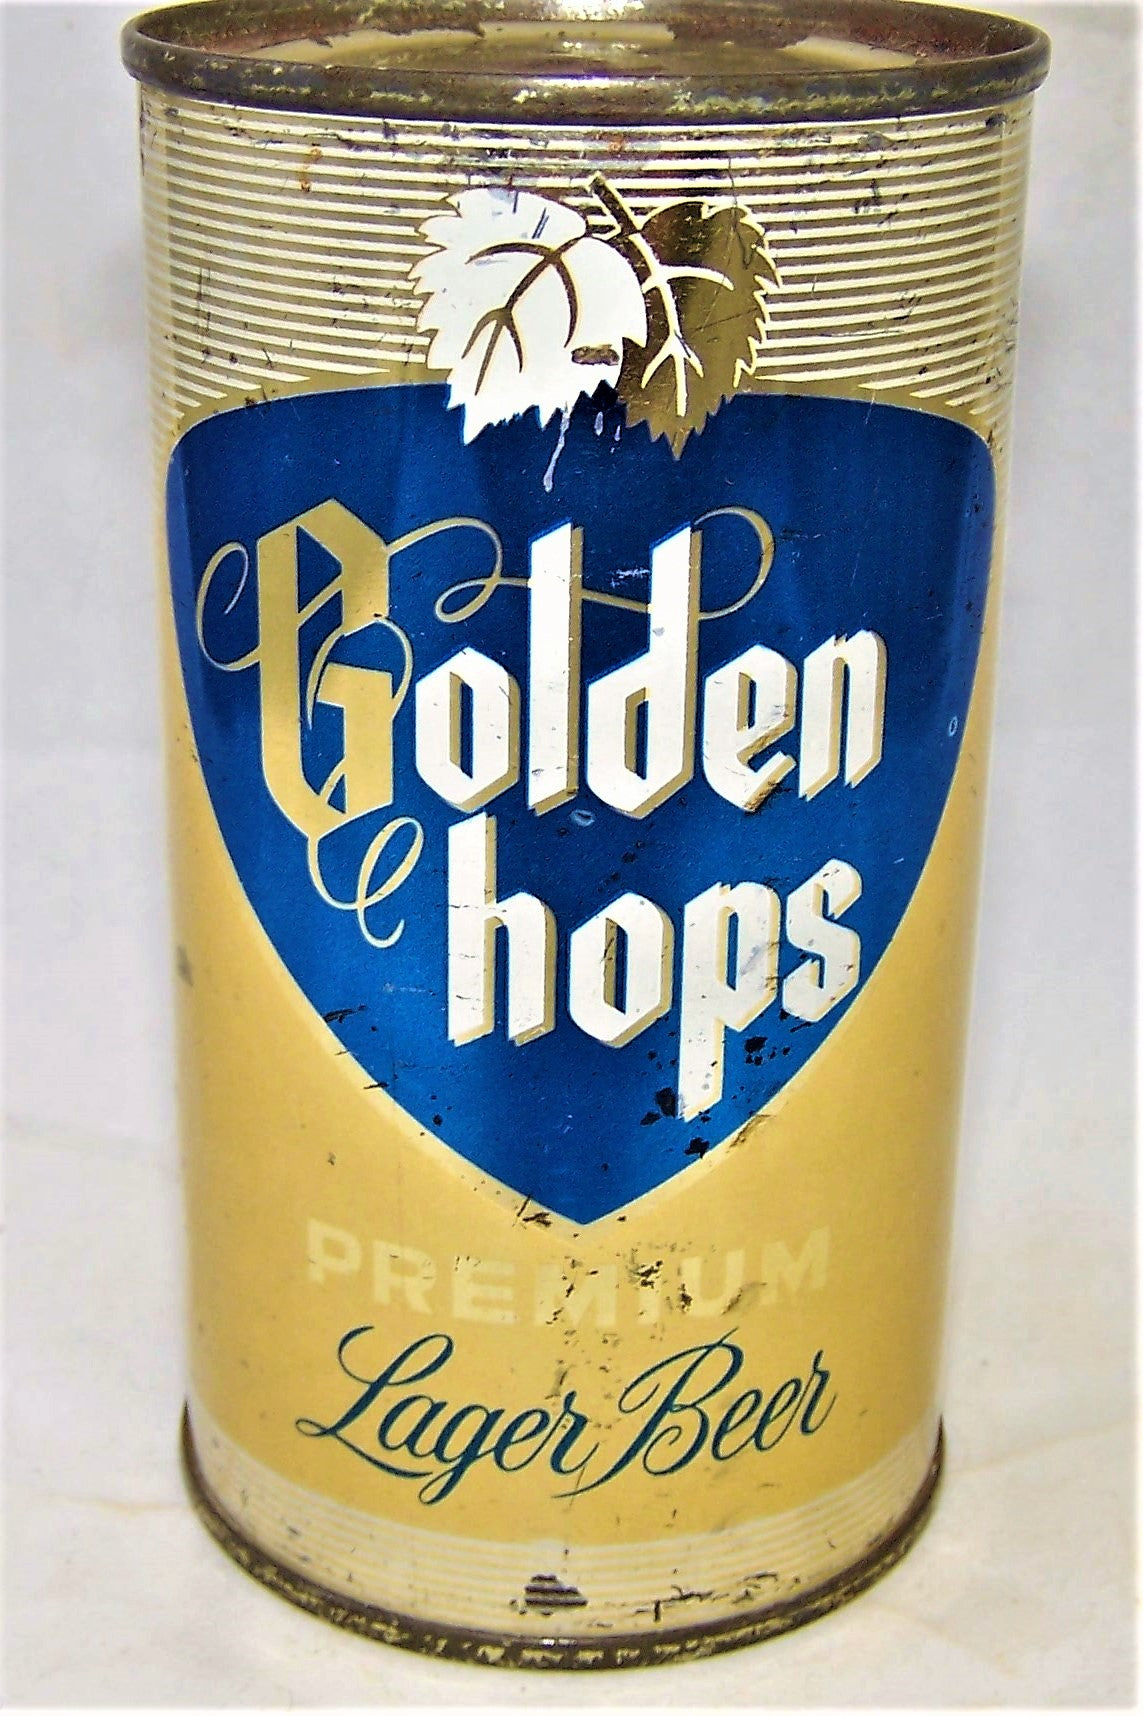 Golden Hops Lager Beer, USBC 73-20, Grade 1-